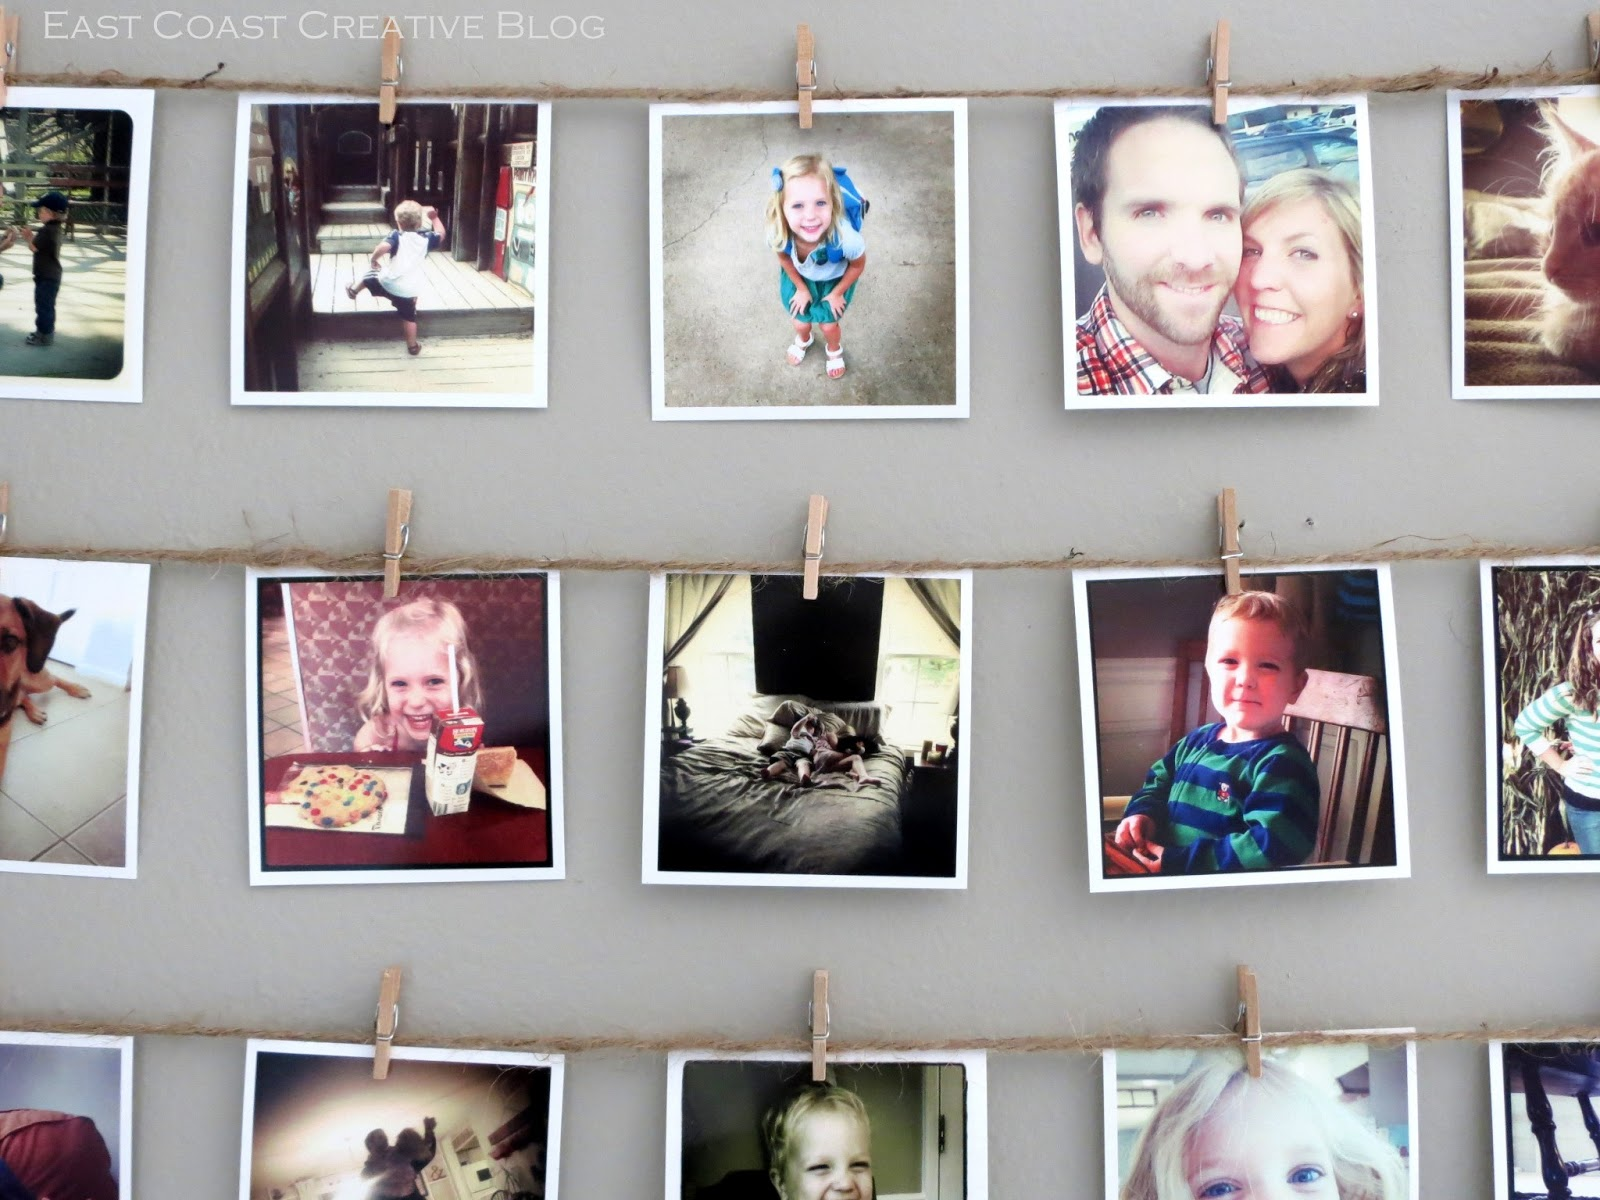 Filed Under: 5 Ways Posts Tagged With: clothesline, clothespins, family photos, framed, Instagram photos, labels, magnetic, photo display, primer, thrifted, wall Footer #2 Widget This is an example of a widgeted area that you can place text to describe a particular product or service.